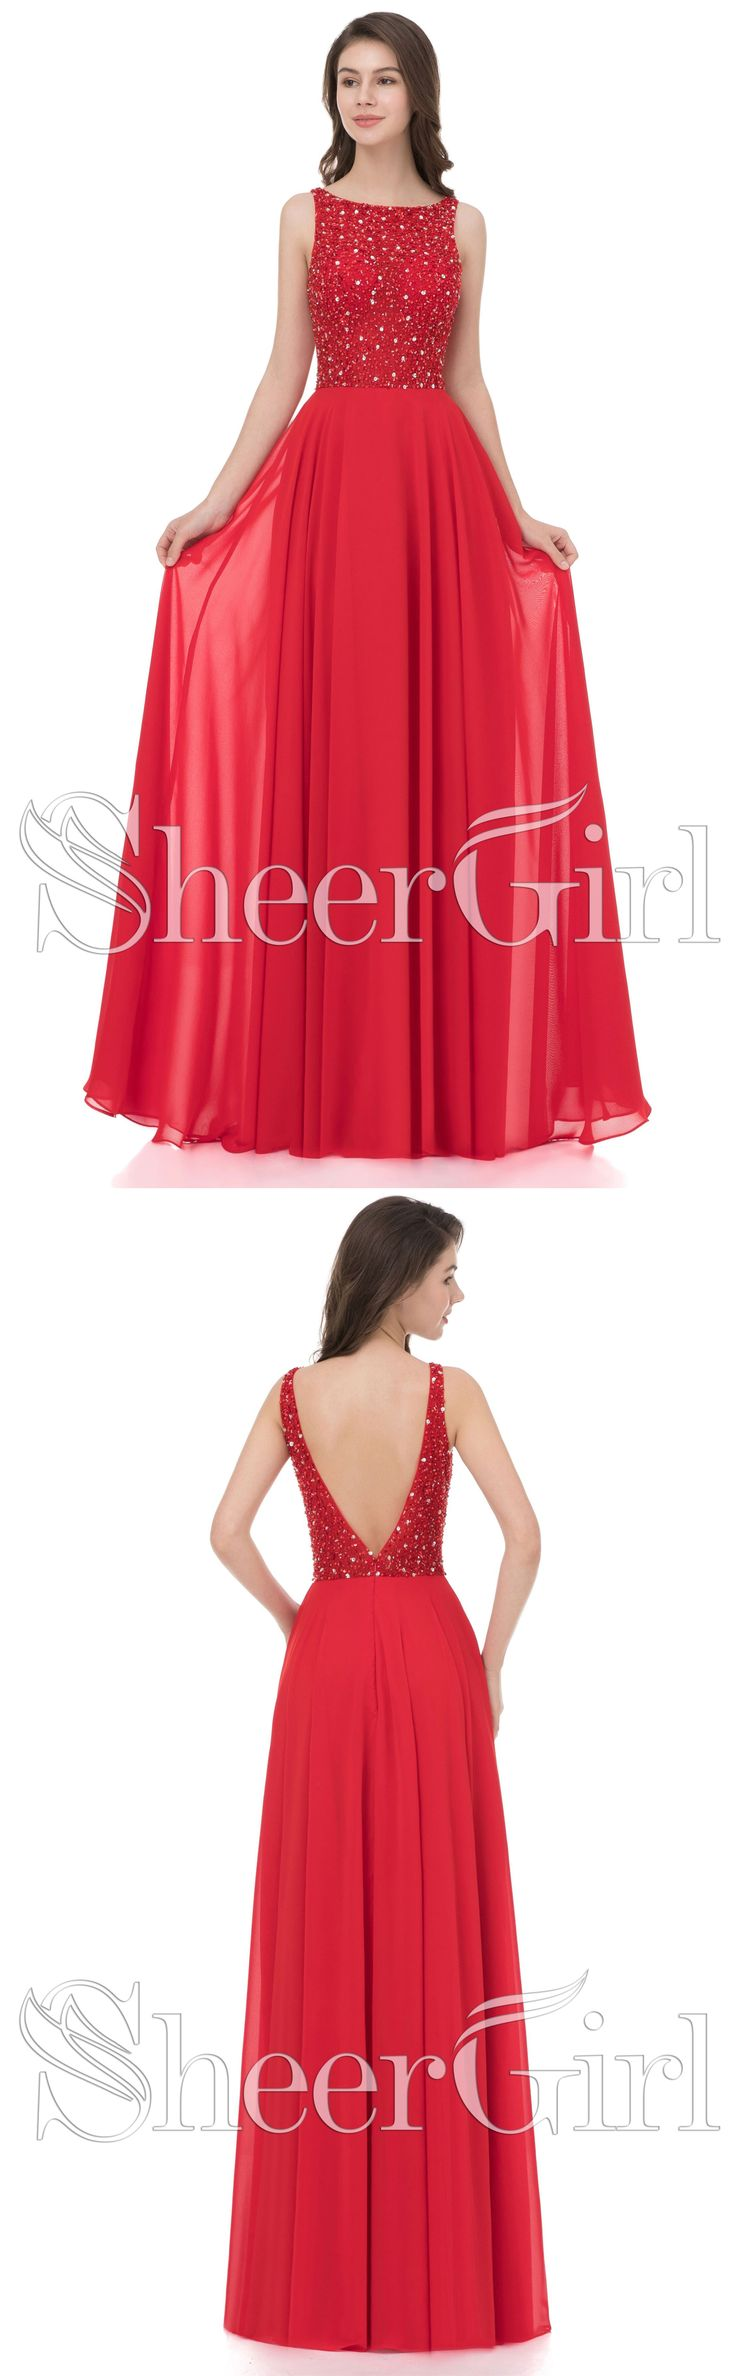 Red Chiffon Long Prom Dresses with Beaded Bodice,Cheap Prom Dresses,Pageant Dresses,Prom Dresses 2018,#prom #sheergirl